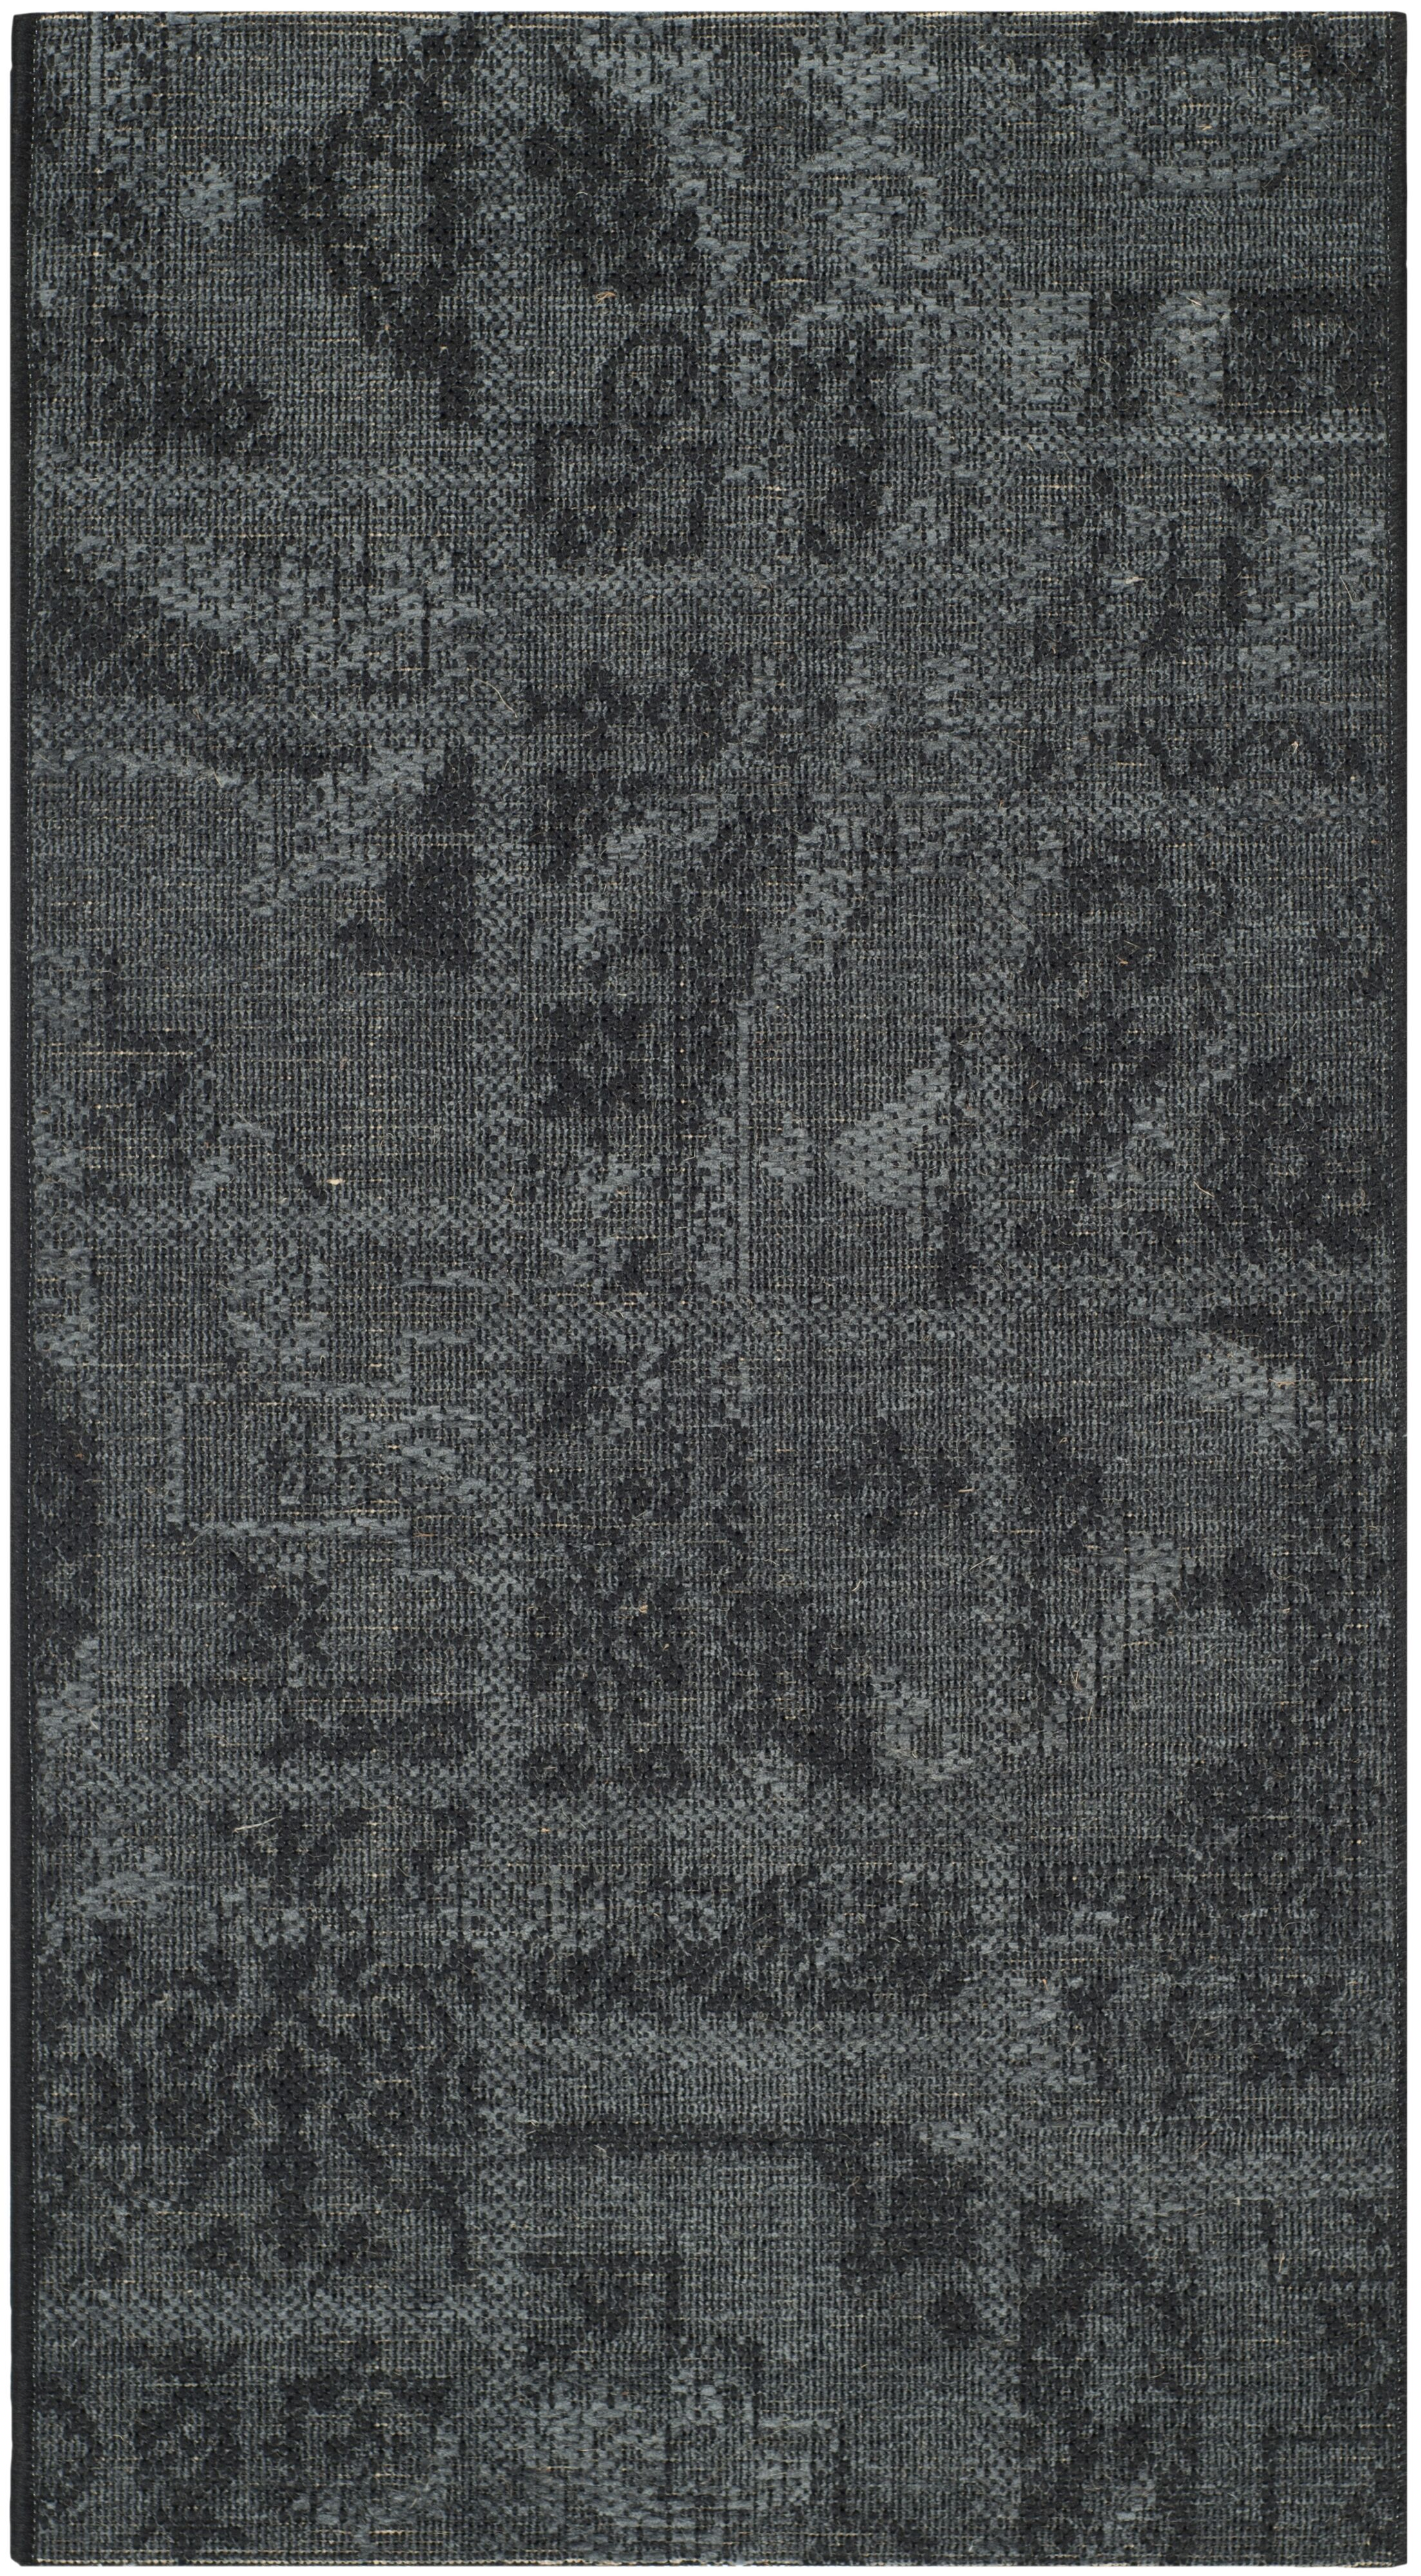 Chipping Ongar Black / Grey Area Rug Rug Size: Rectangle 4' x 6'